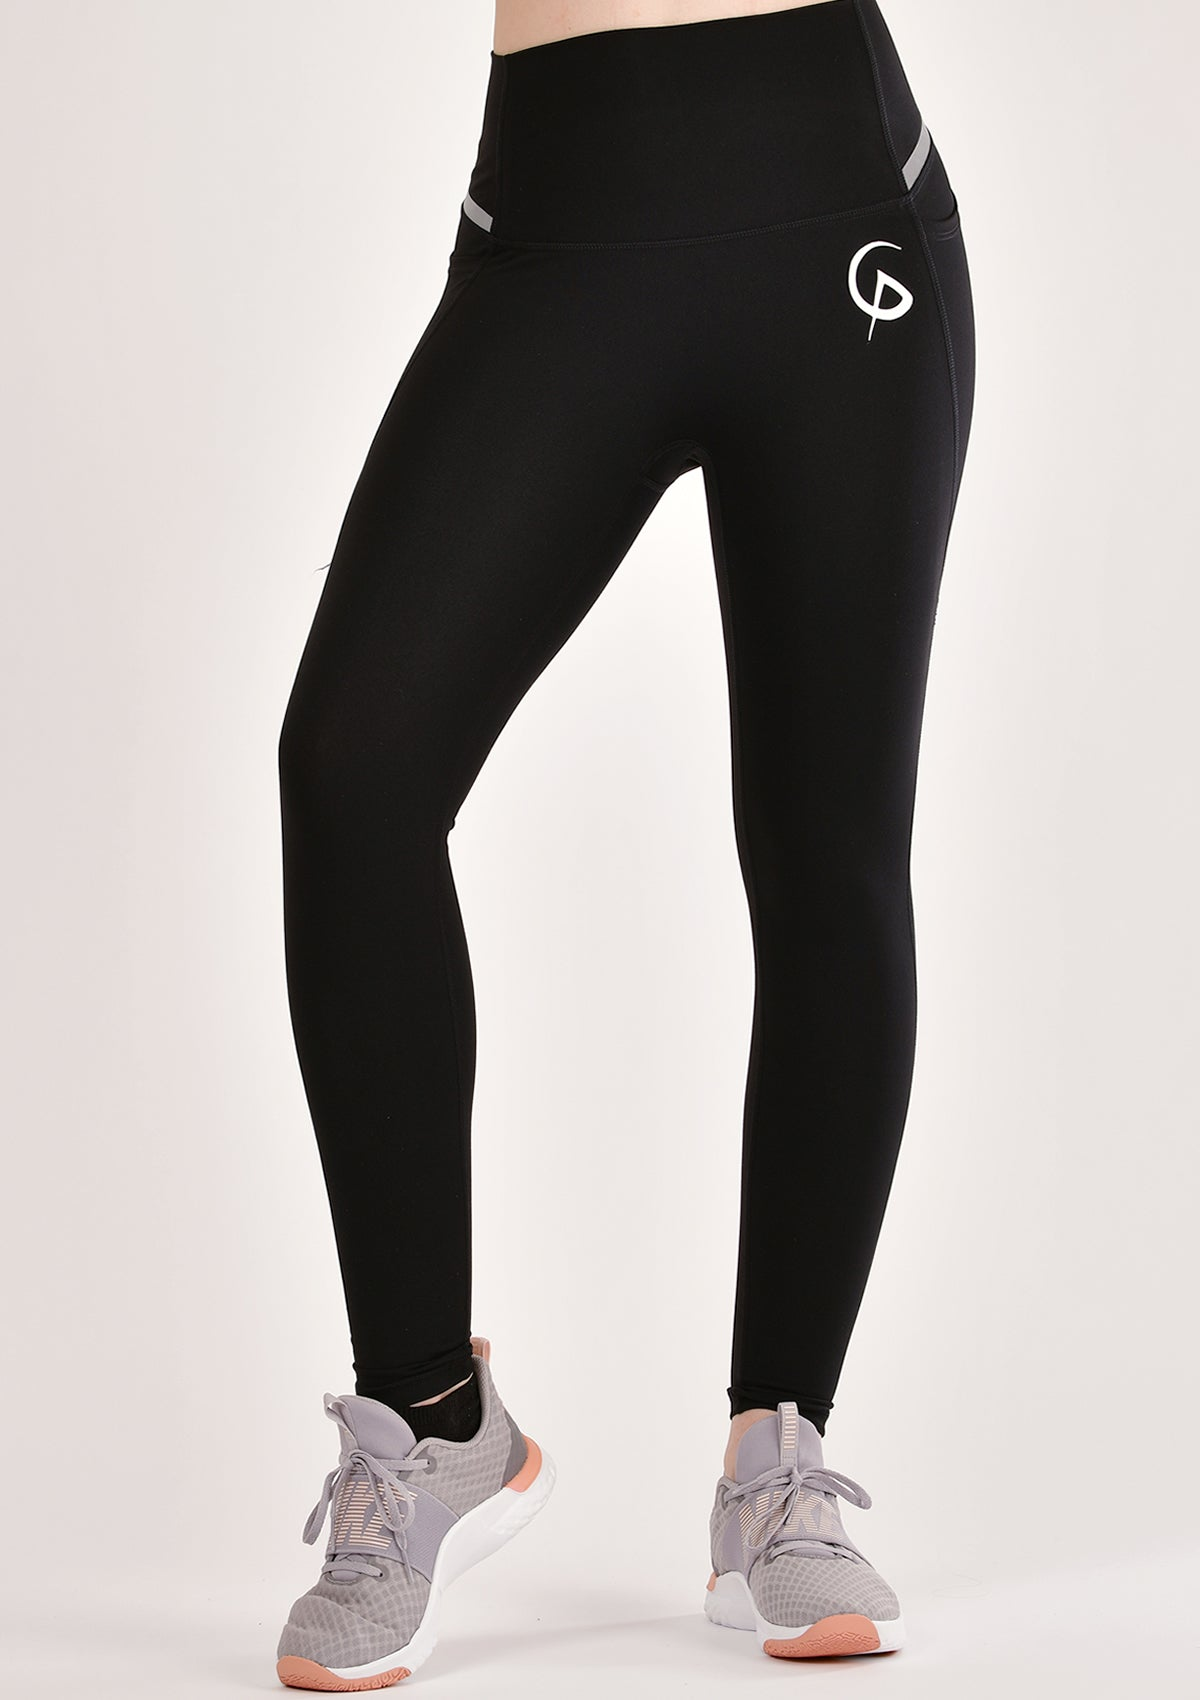 Motive Black Leggings